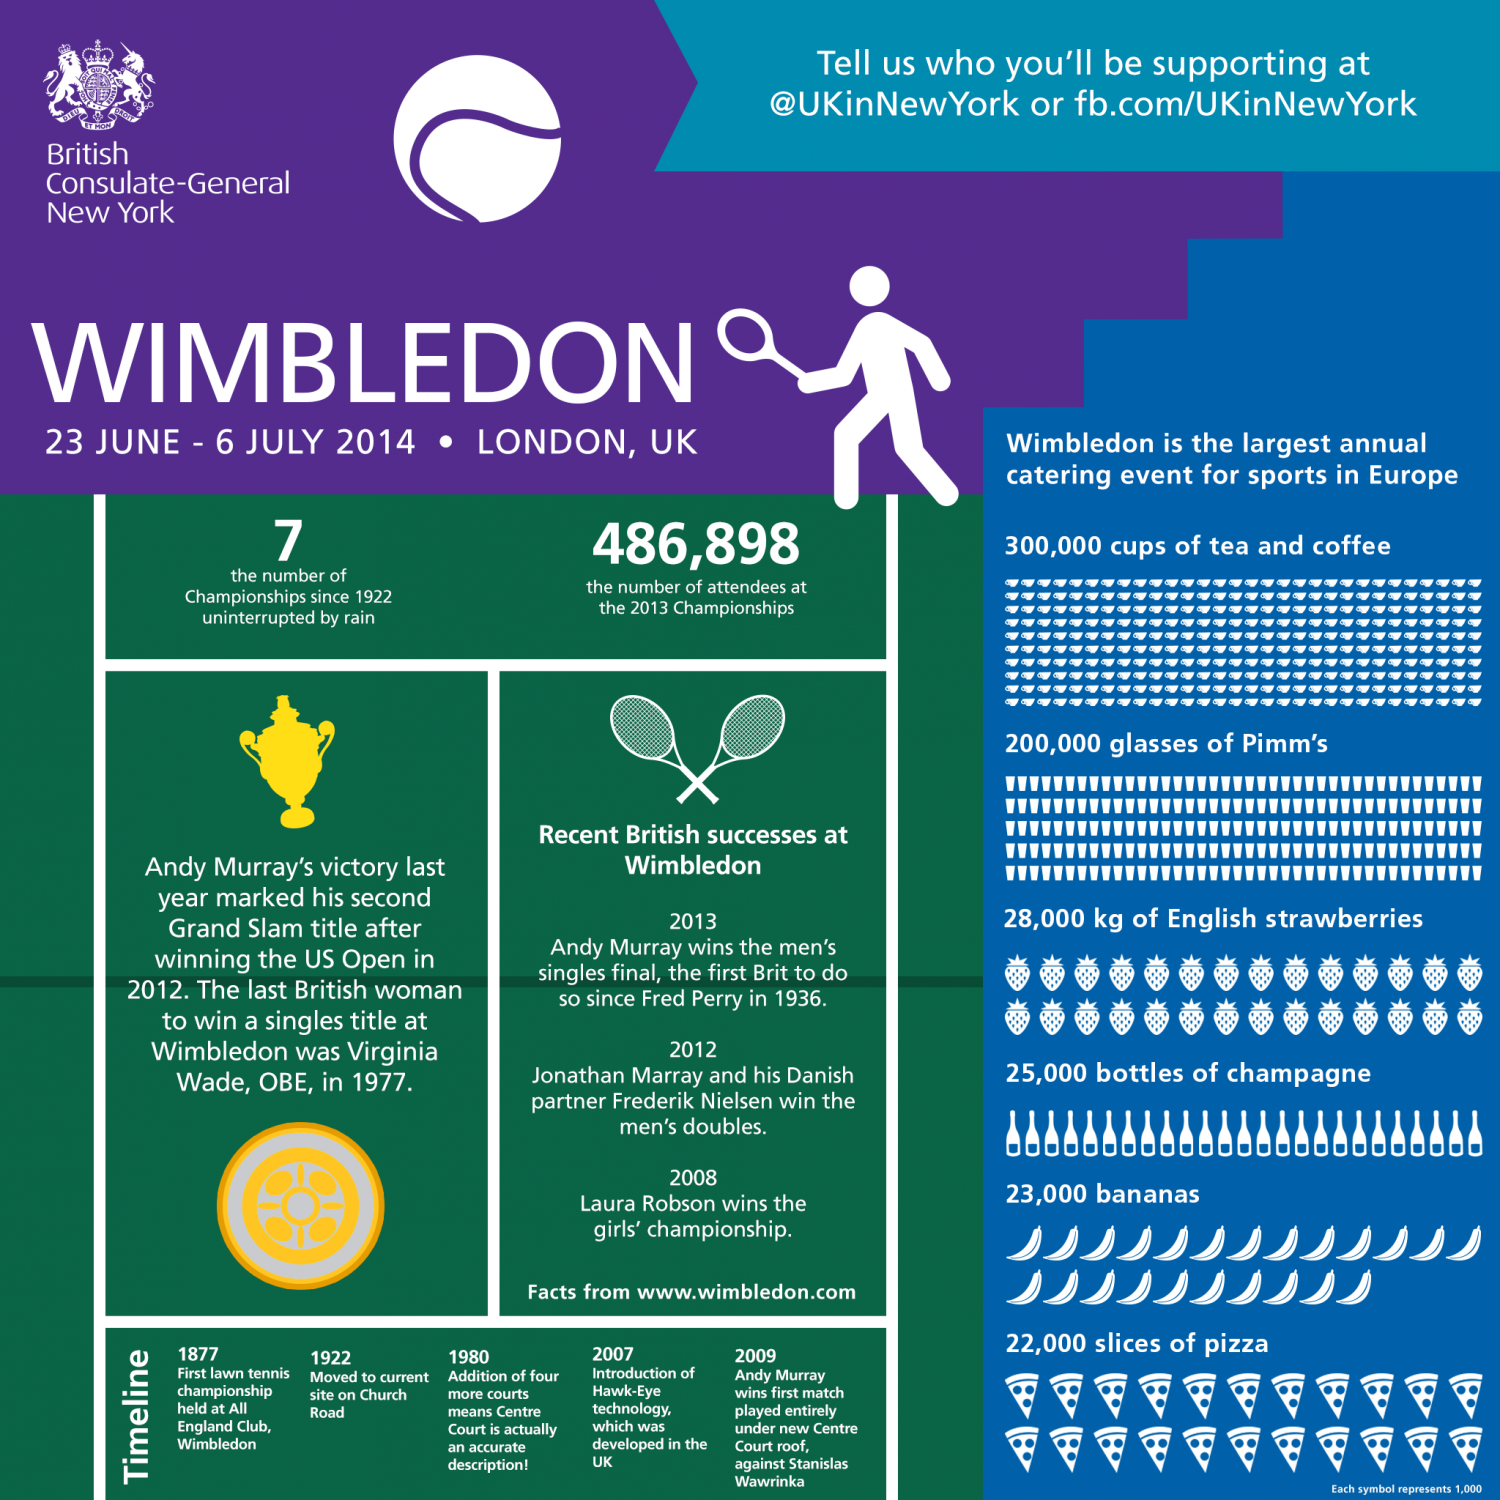 Wimbledon 2014 Interesting Facts Infographic